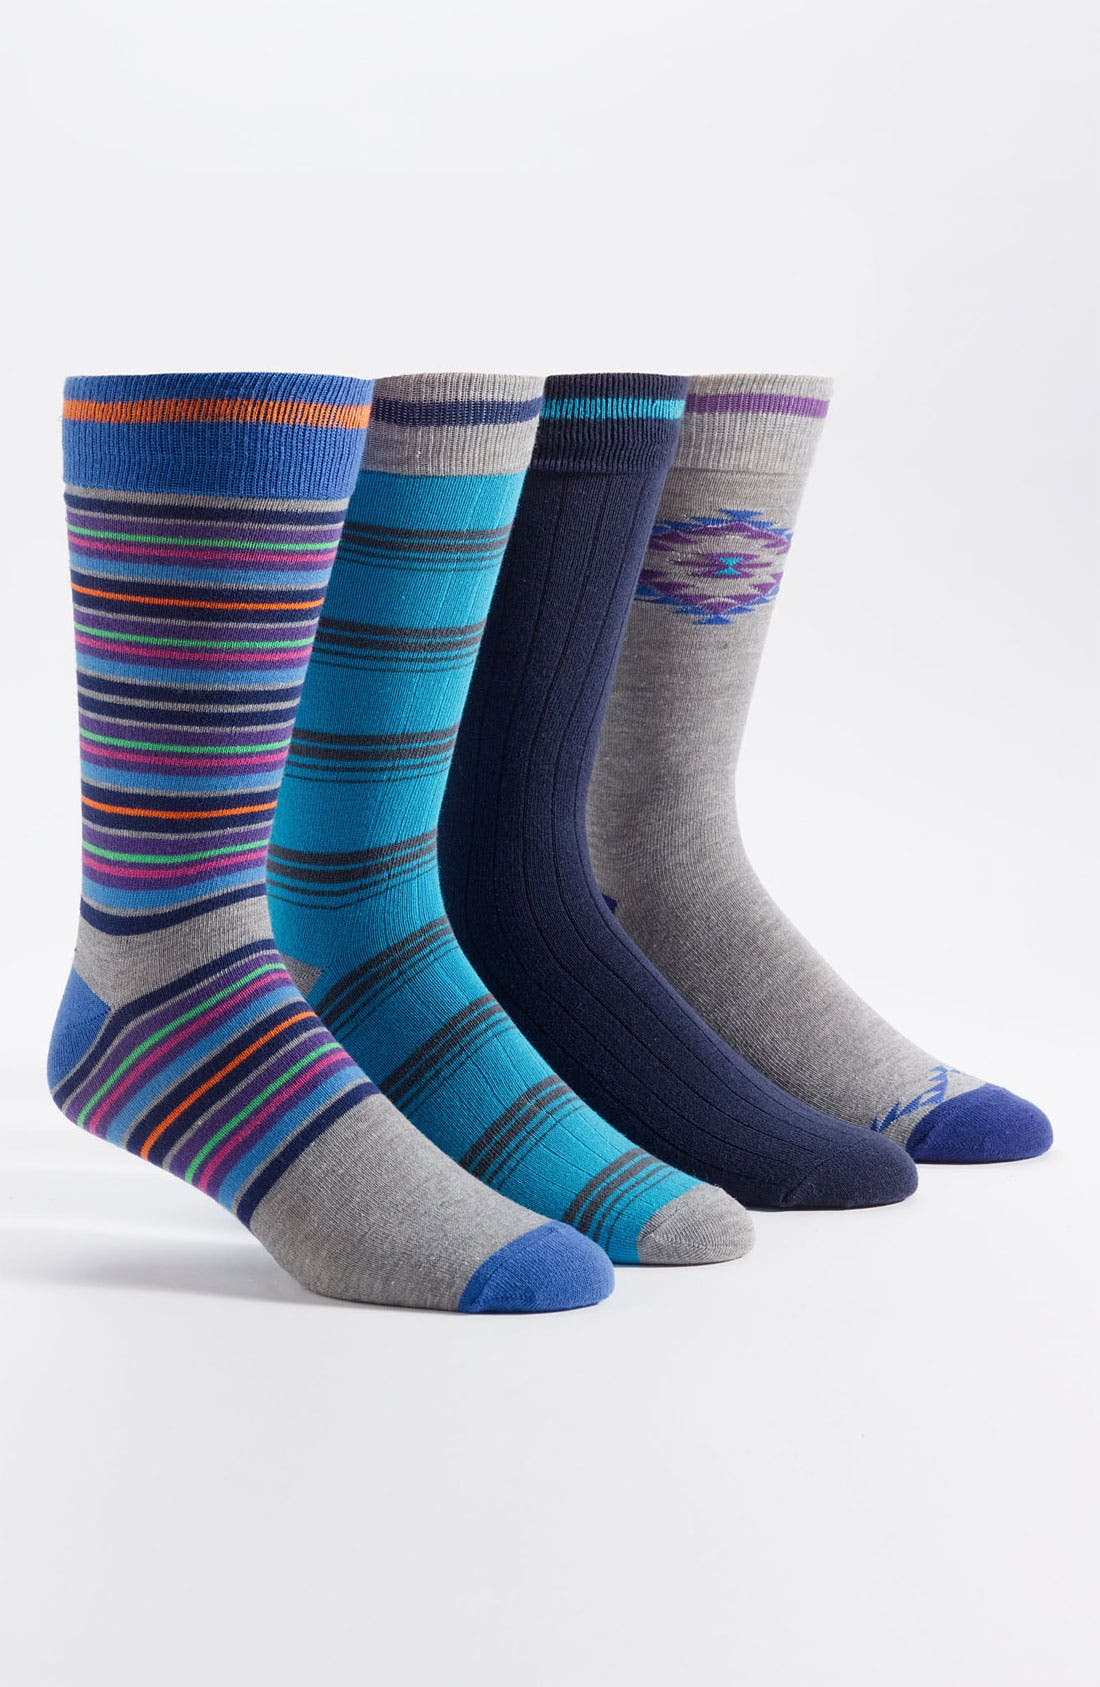 Alternate Image 1 Selected - Basic Sock Patterned Socks (4-Pack)